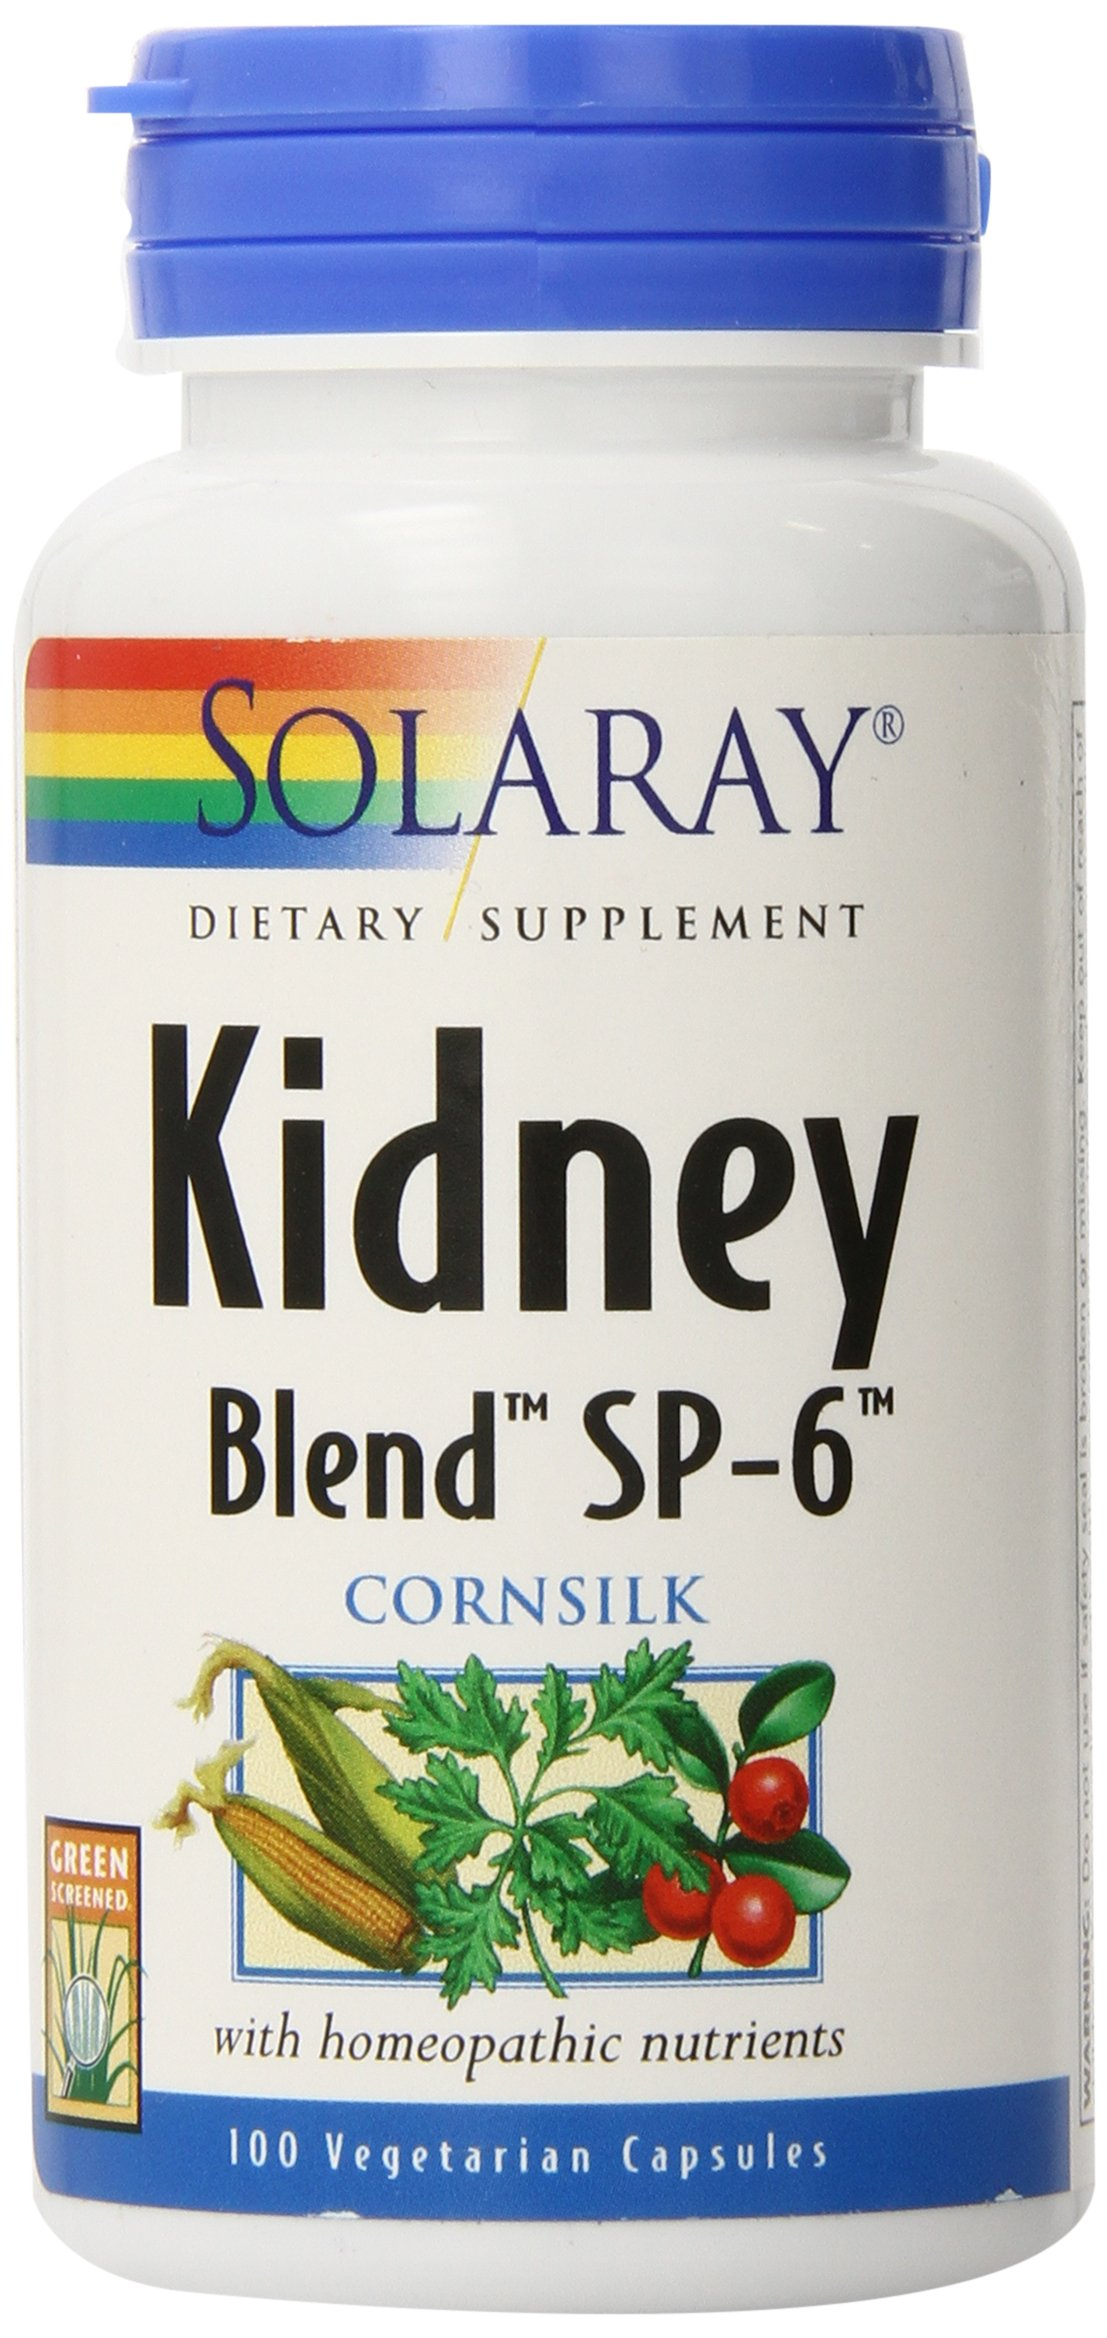 Solaray Kidney Blend SP-6 | Herbal Blend w/Cell Salt Nutrients to Help Support Healthy Kidney Function | Non-GMO, Vegan…